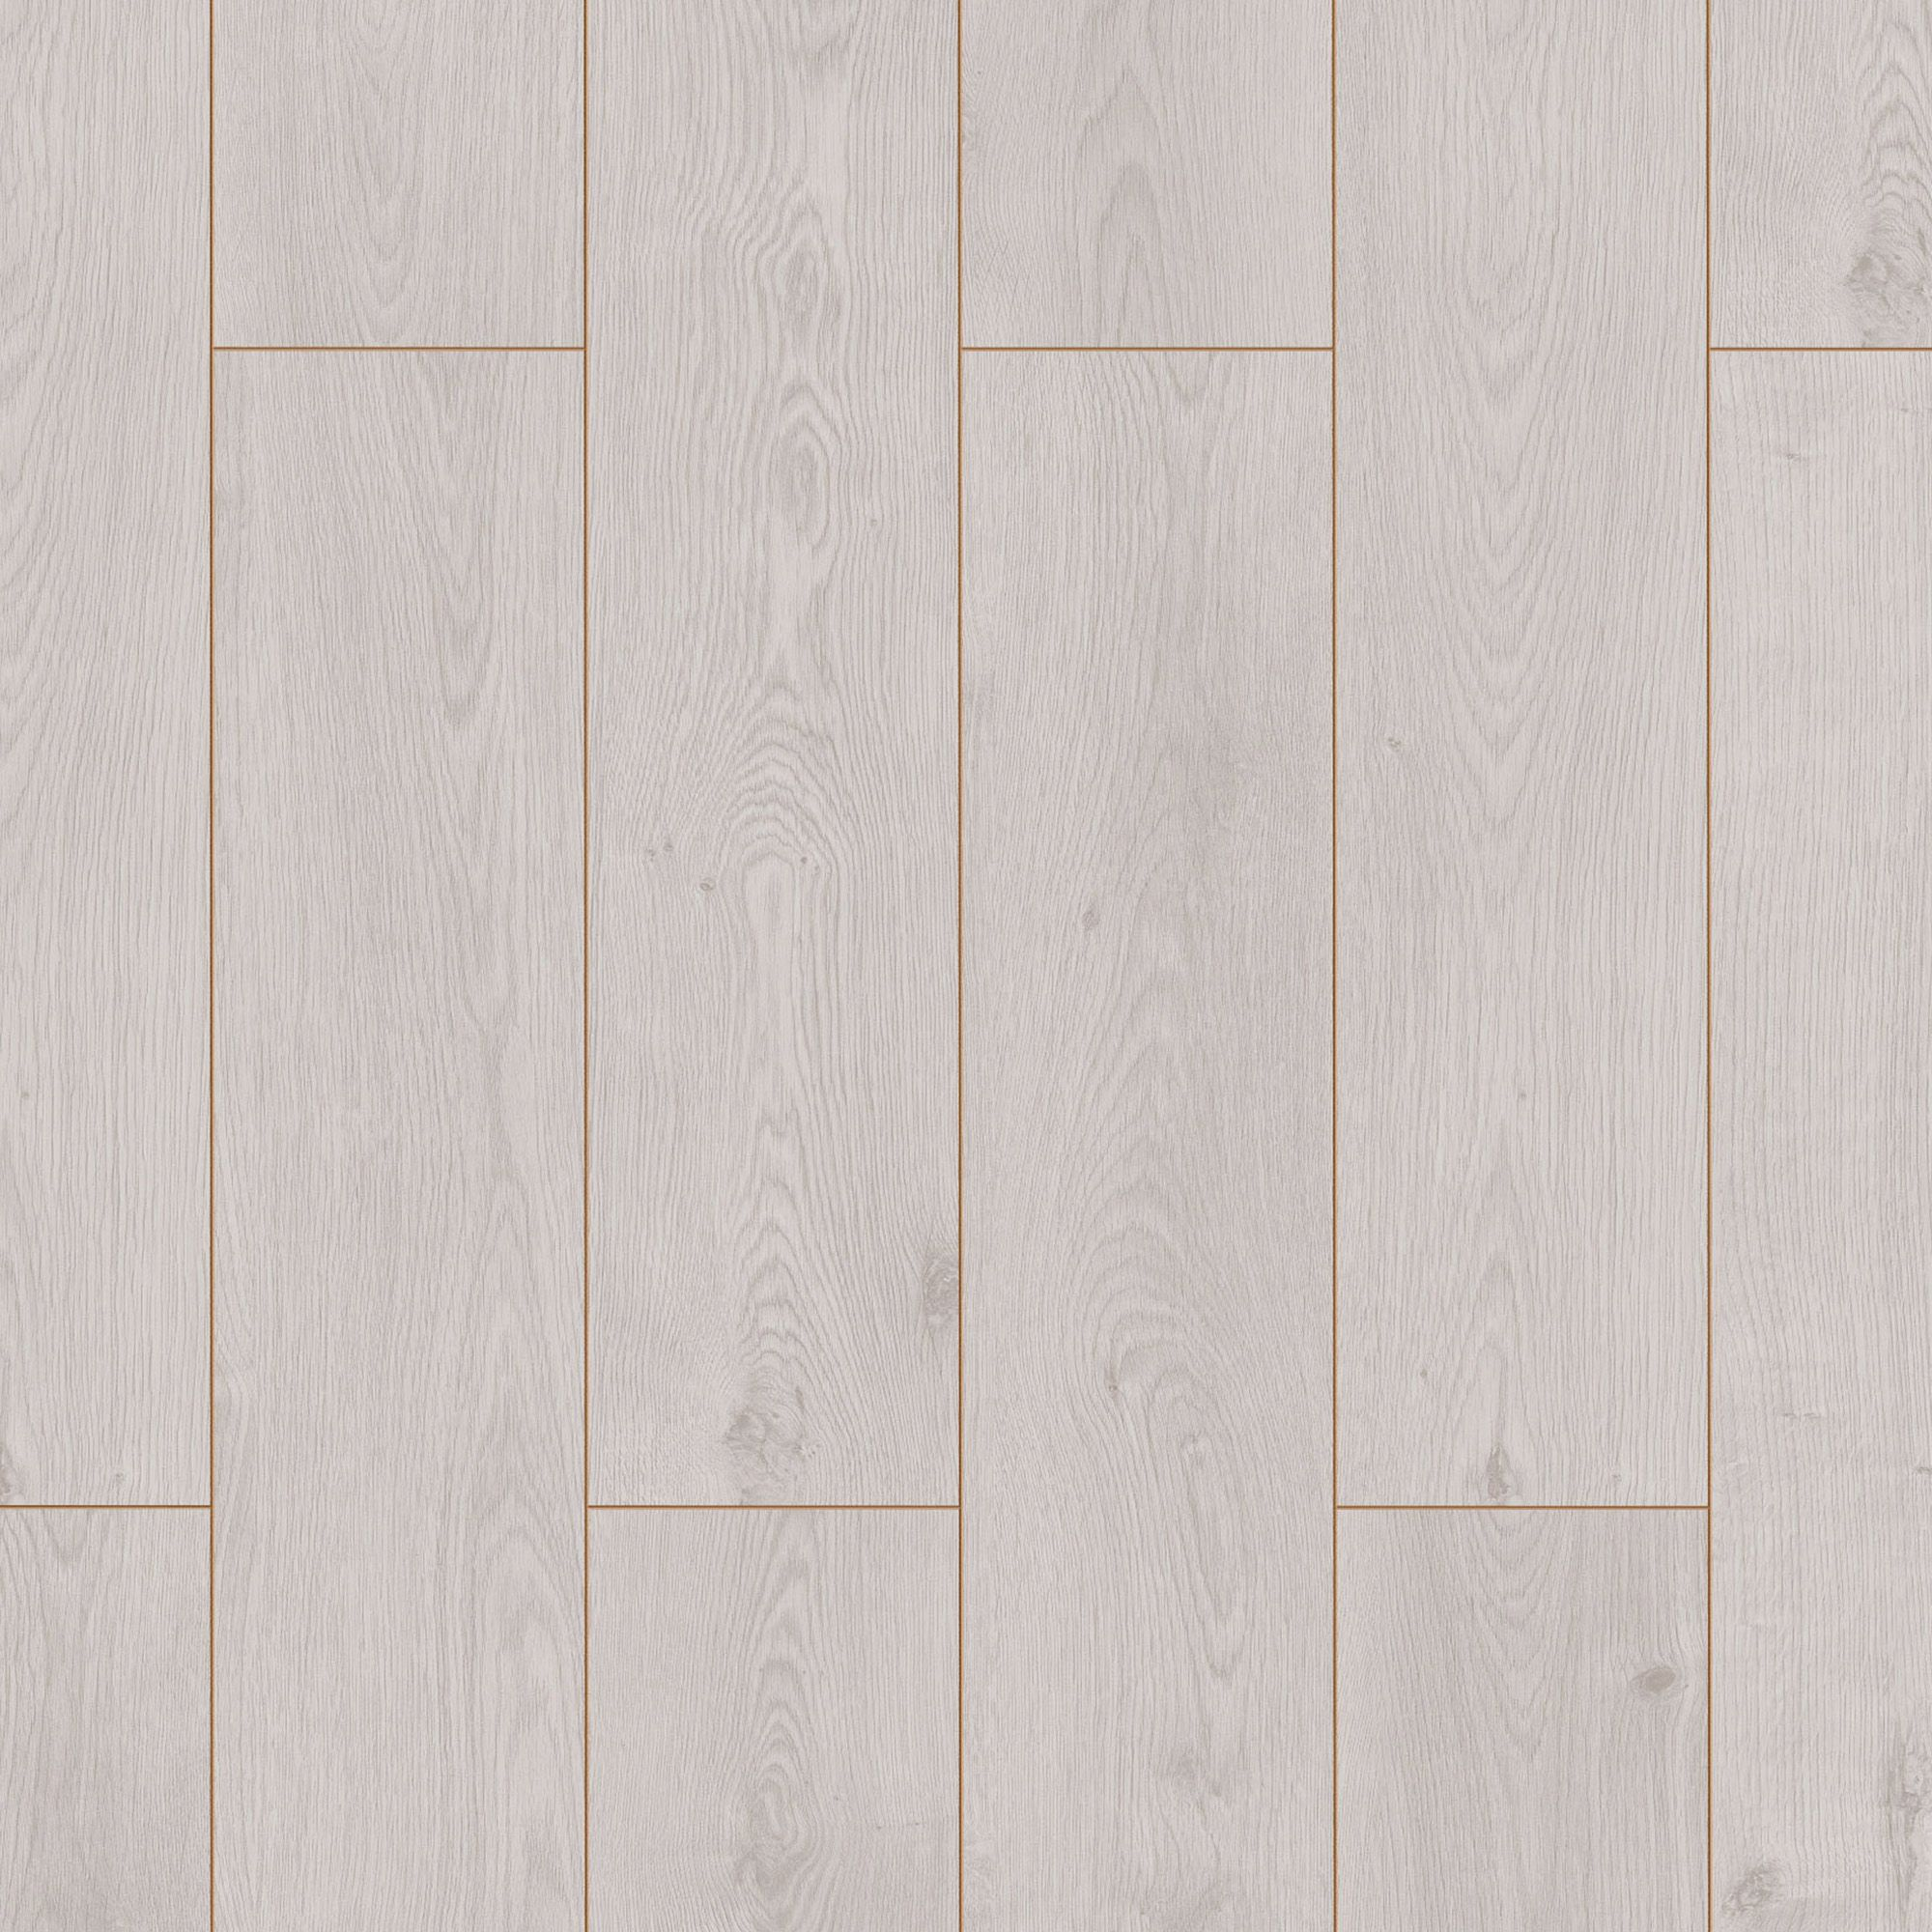 Overture Arlington White Oak Effect Laminate Flooring 1 25